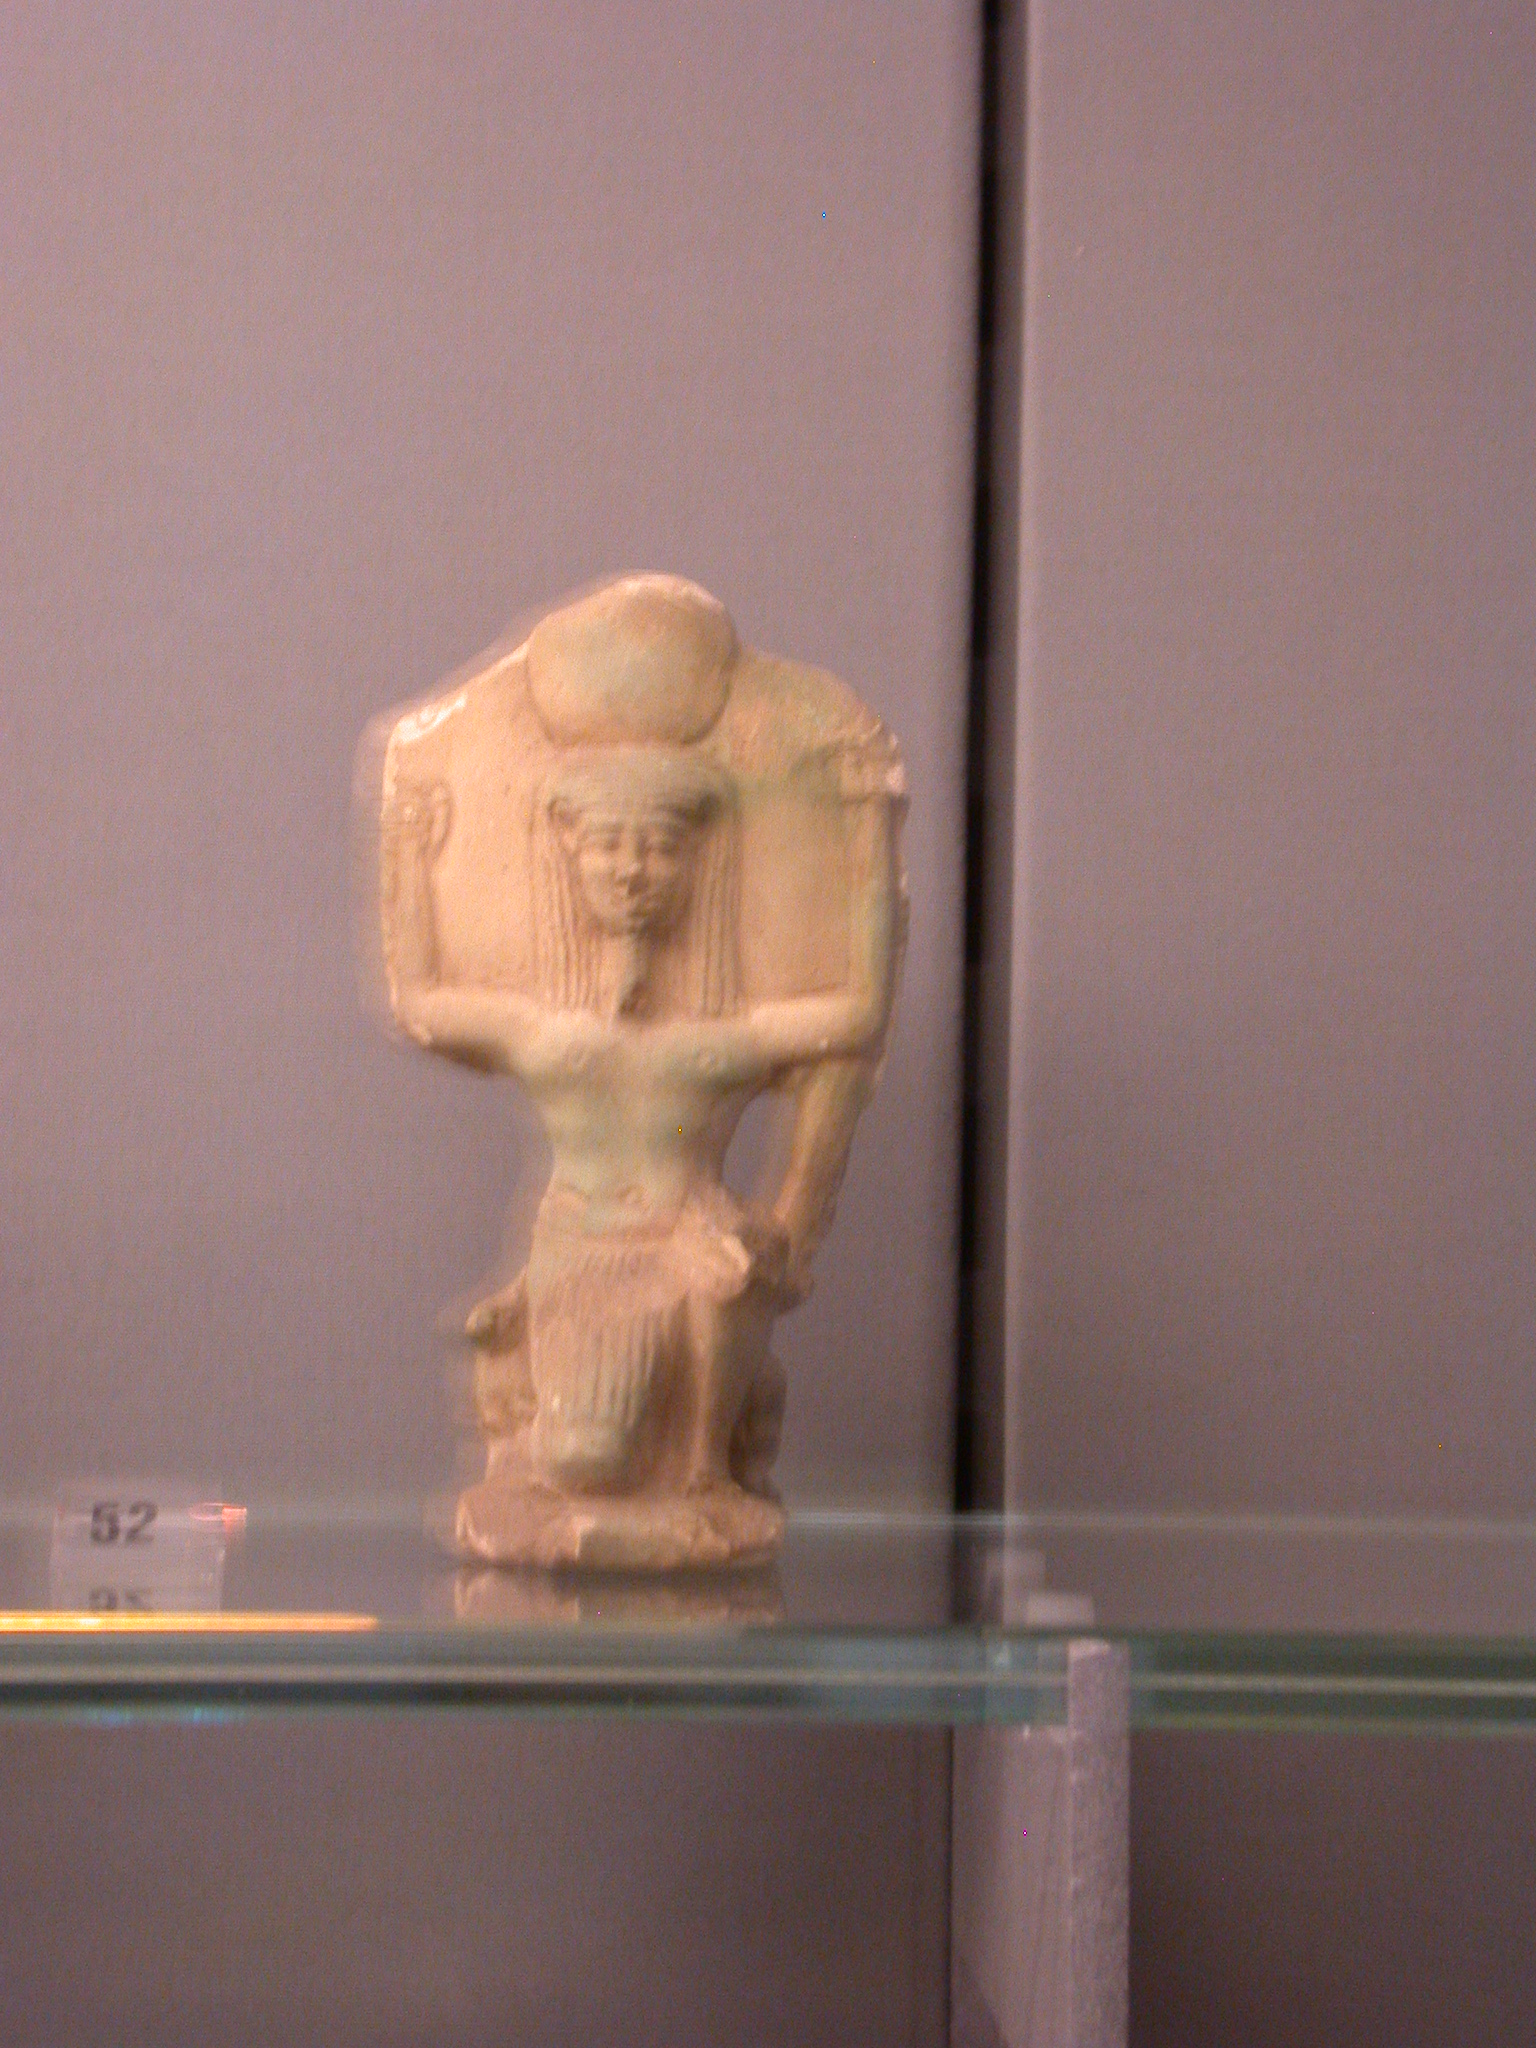 Faience Figure of Shu, God of Sunlight and Air, Late Period, 746-336 BCE, Egypt, Fitzwilliam Museum, Cambridge, England